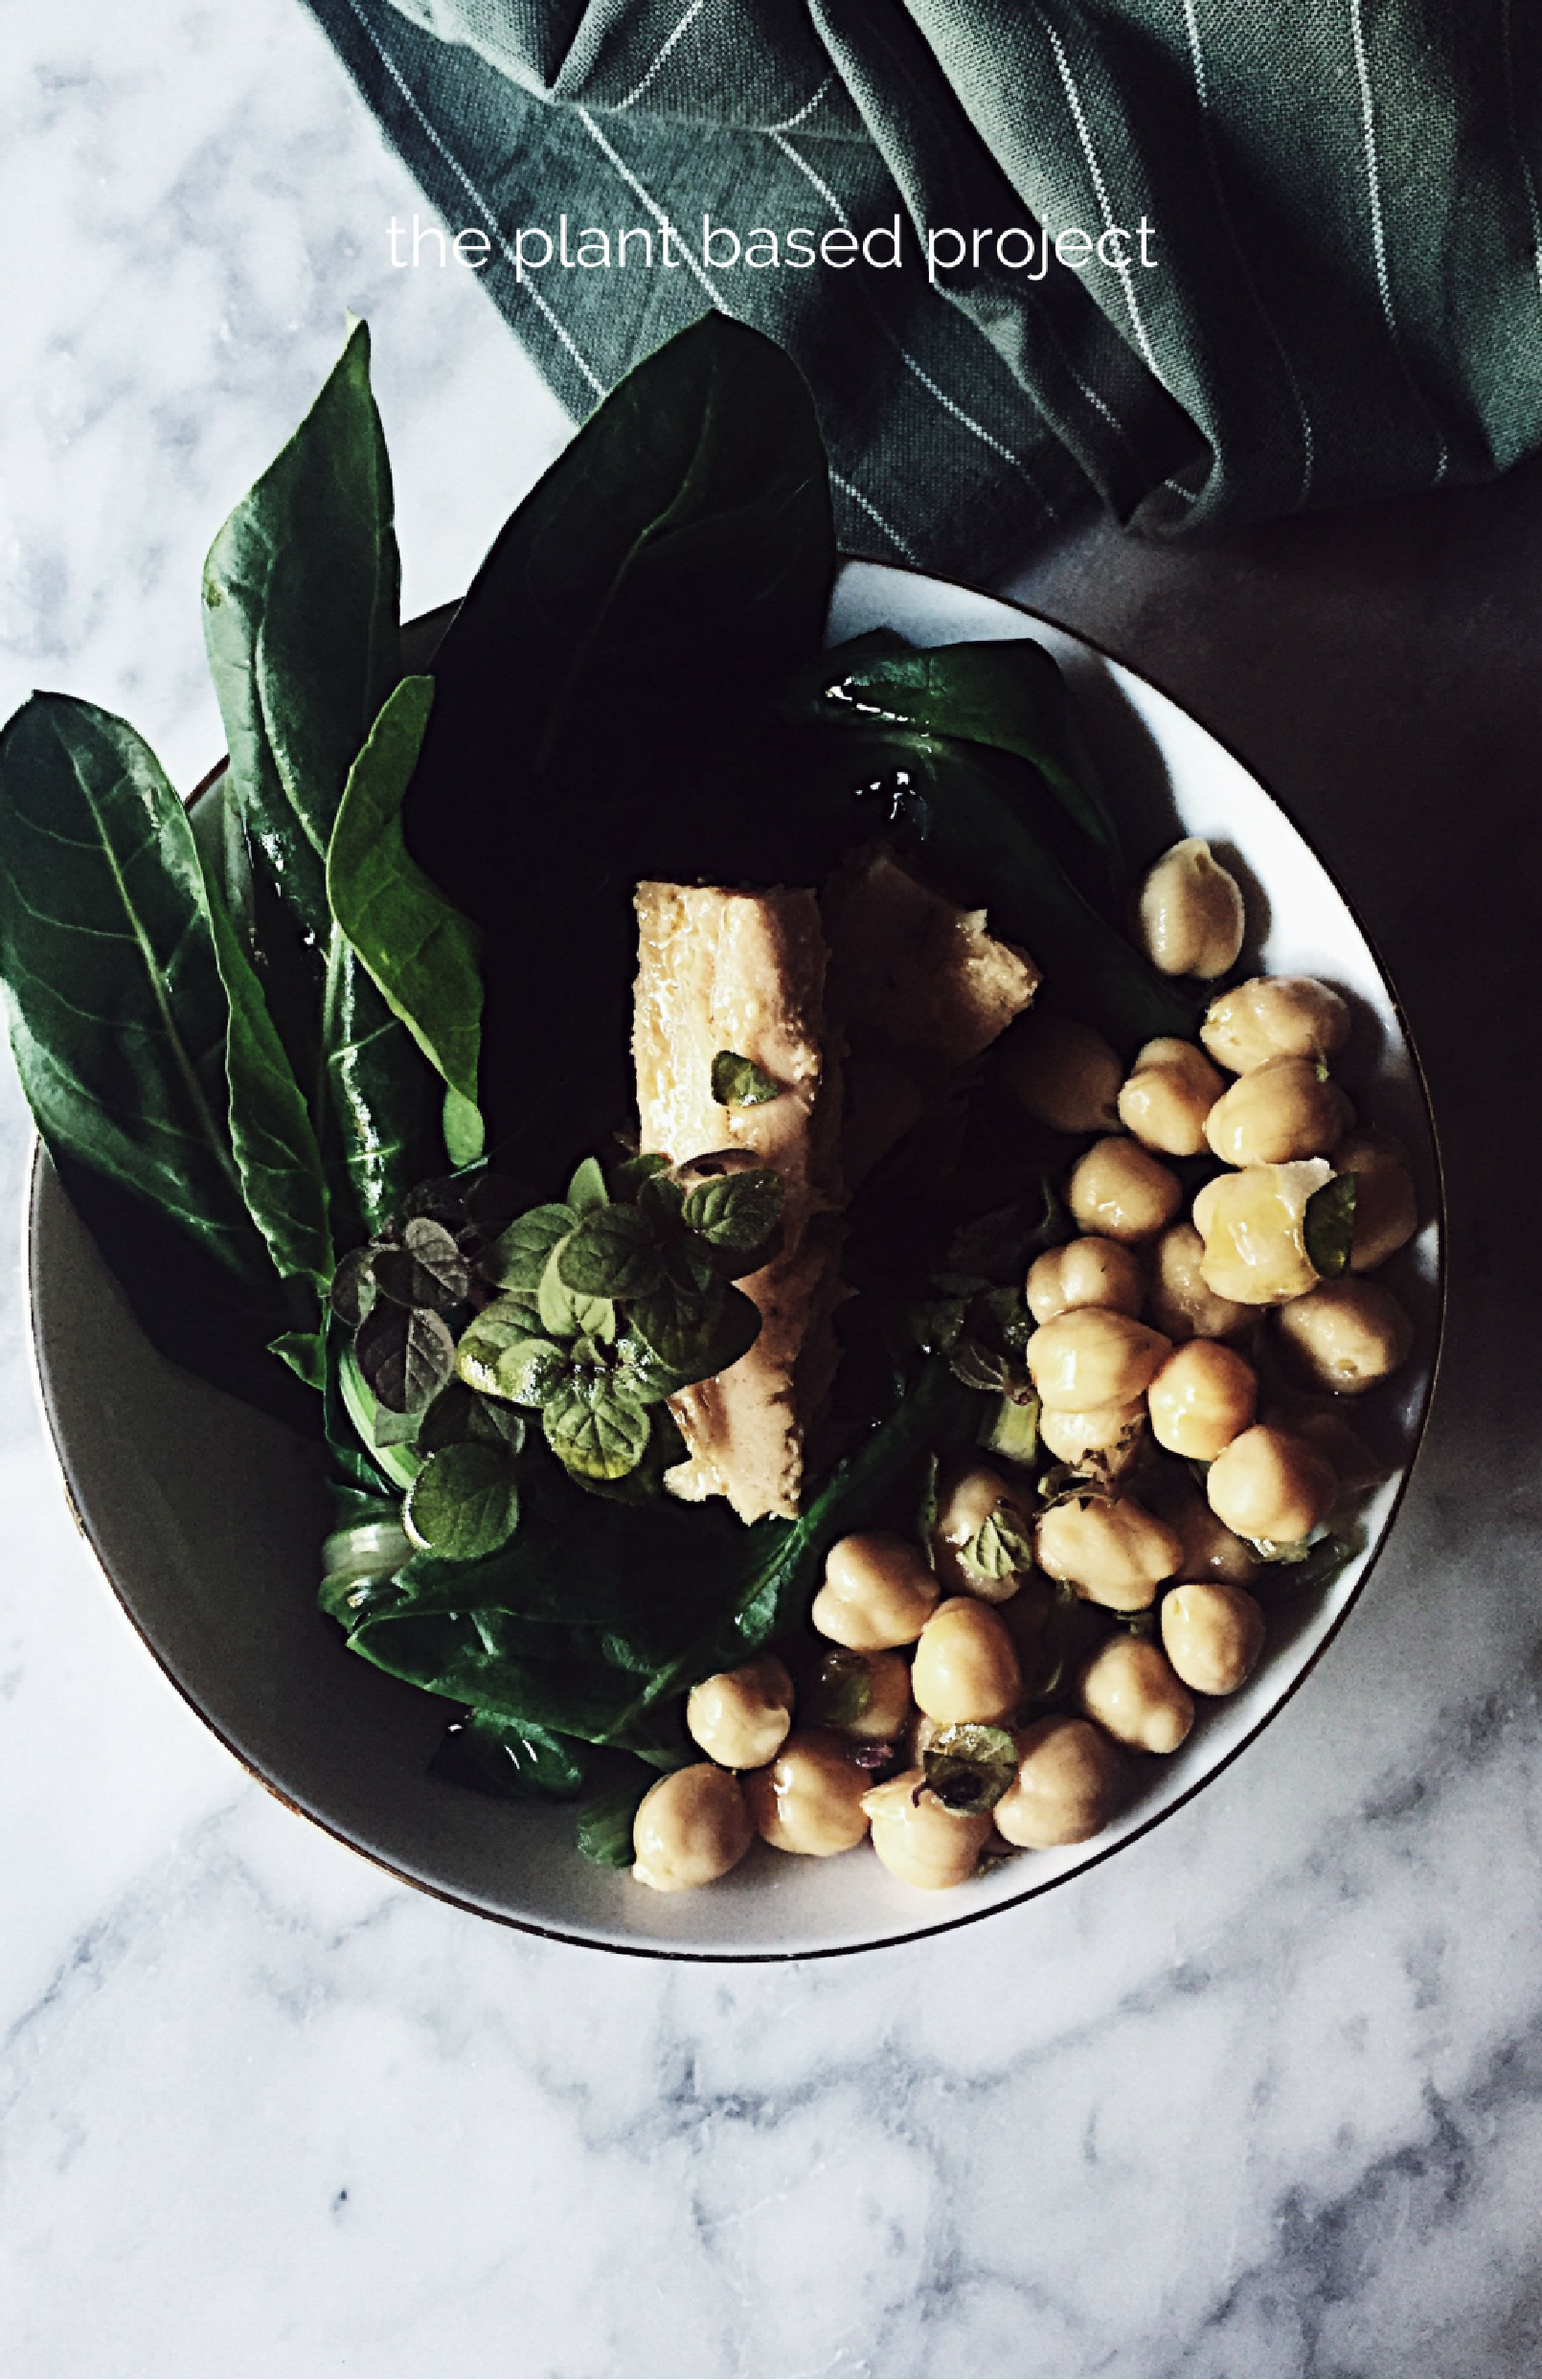 healthy italian recipes: a chard, chickpeas and tuna warm salad